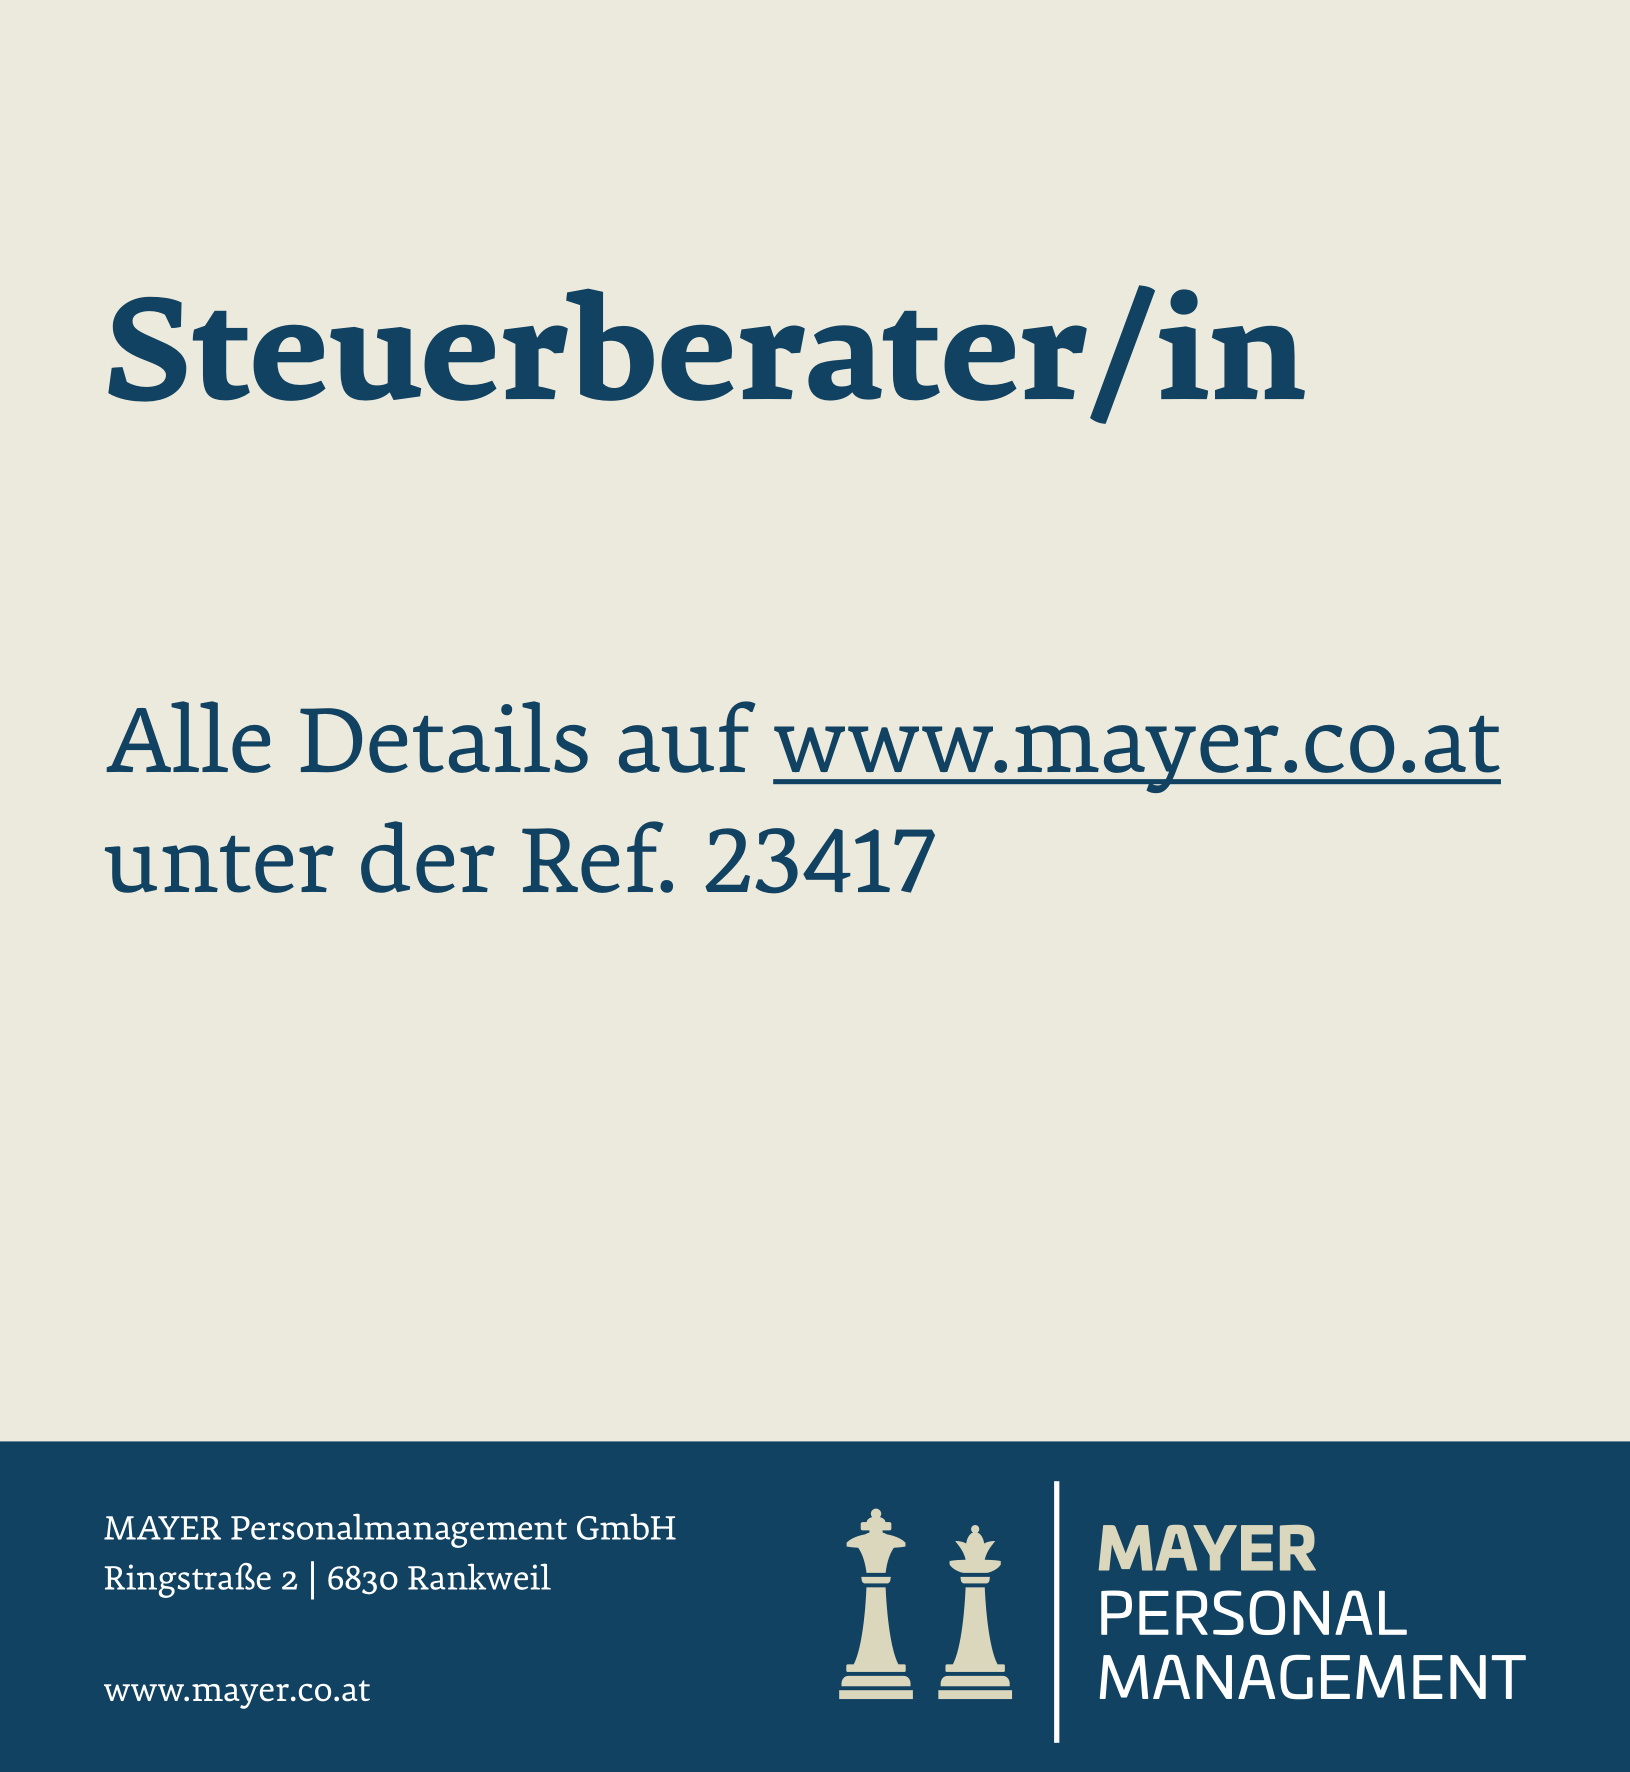 Steuerberater/in